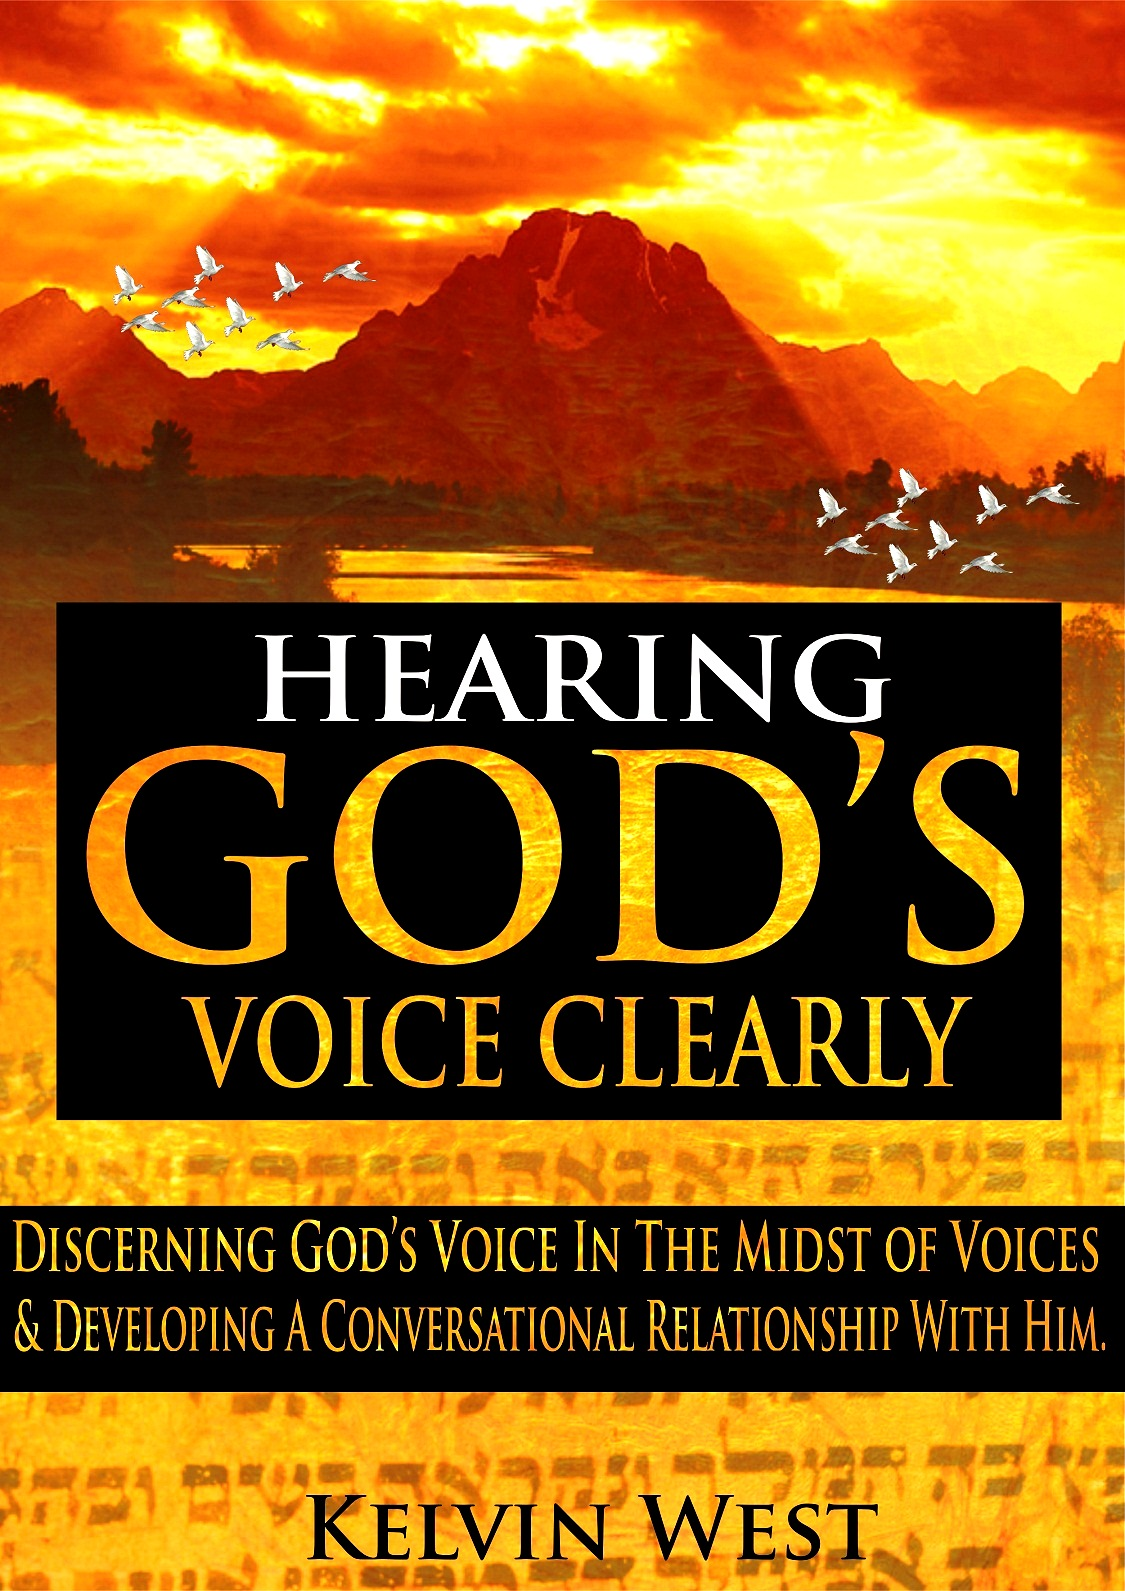 Hearing god's voice clearly